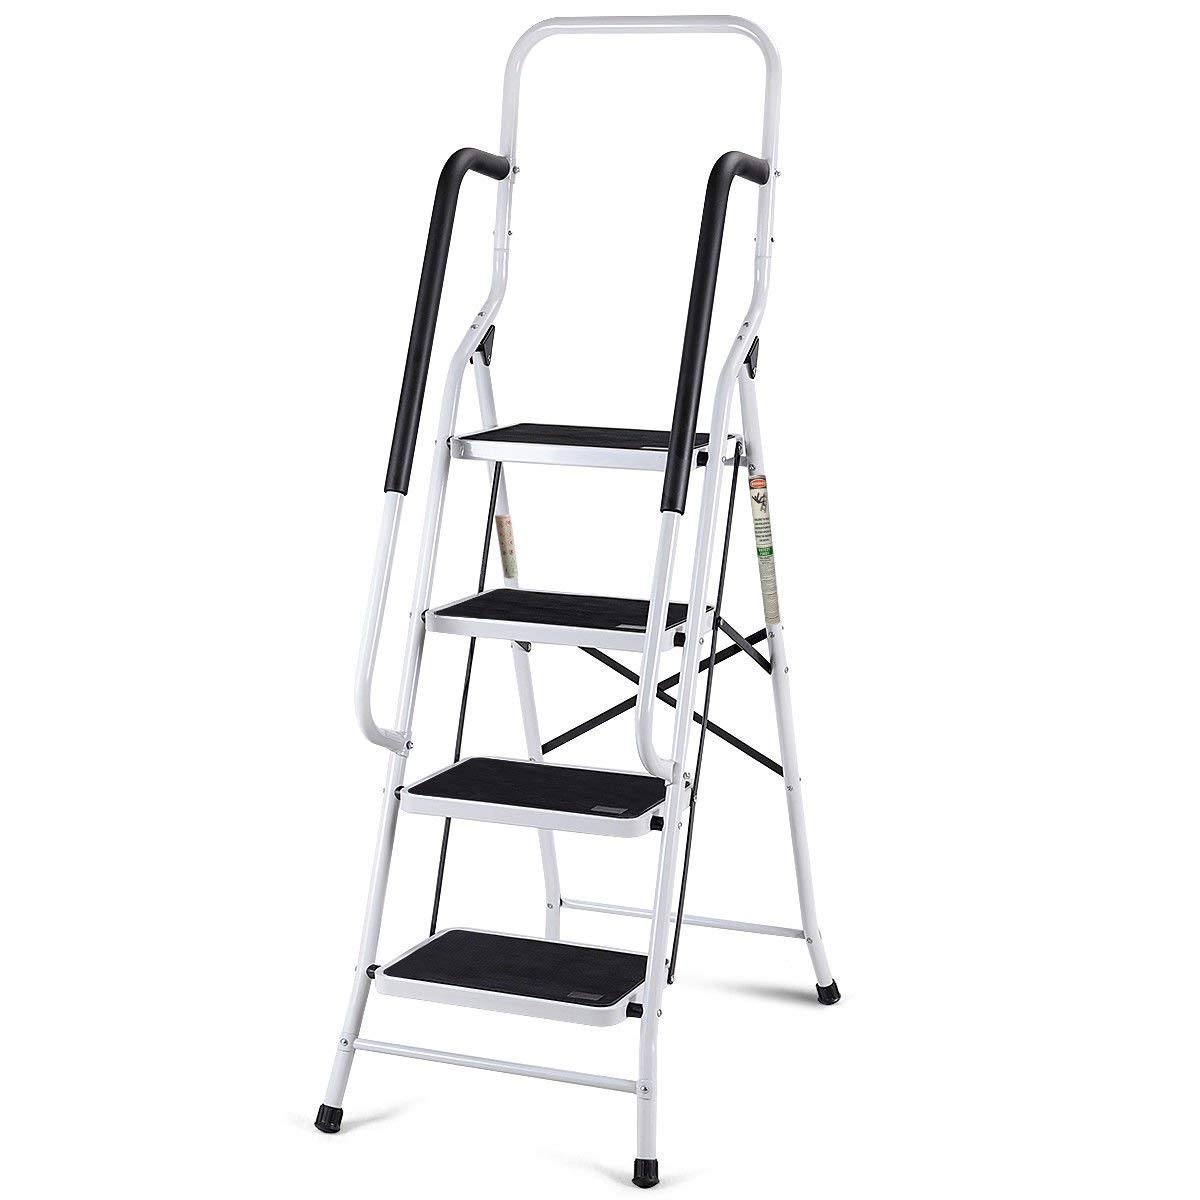 Giantex 2 in 1 Non-Slip Step Ladder Folding Stool w/Handrails and Tool Pouch Caddy (4 Step Ladder)